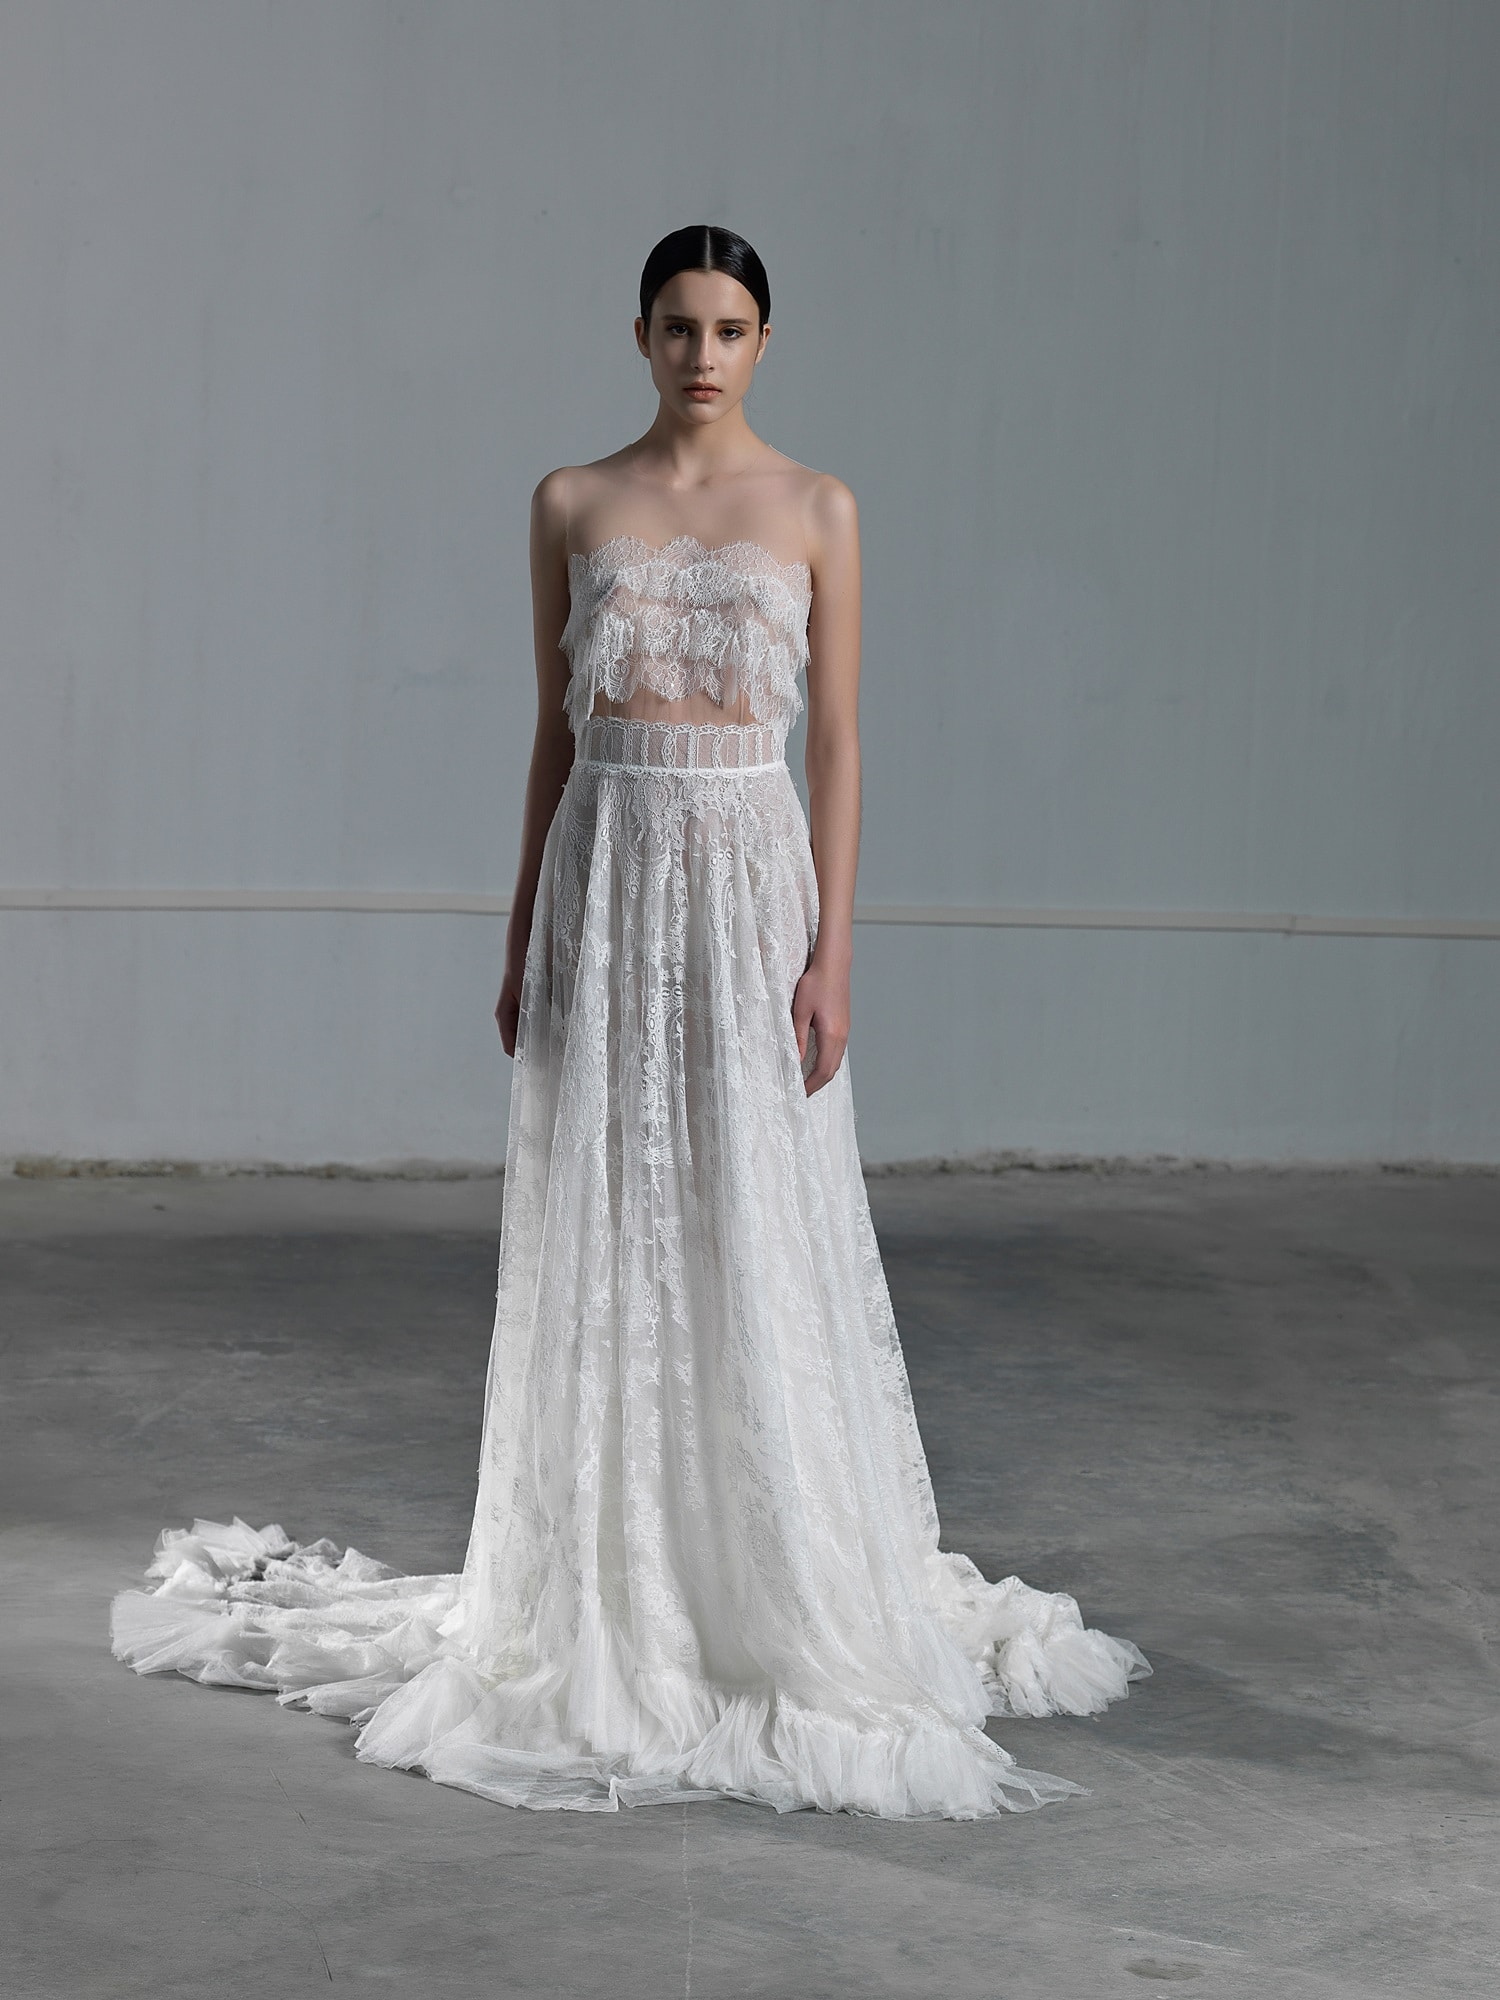 3eb8f82acd43a2 Romantic two piece wedding dress with lace crop top and tulle skirt Vasia  Tzotzopoulou